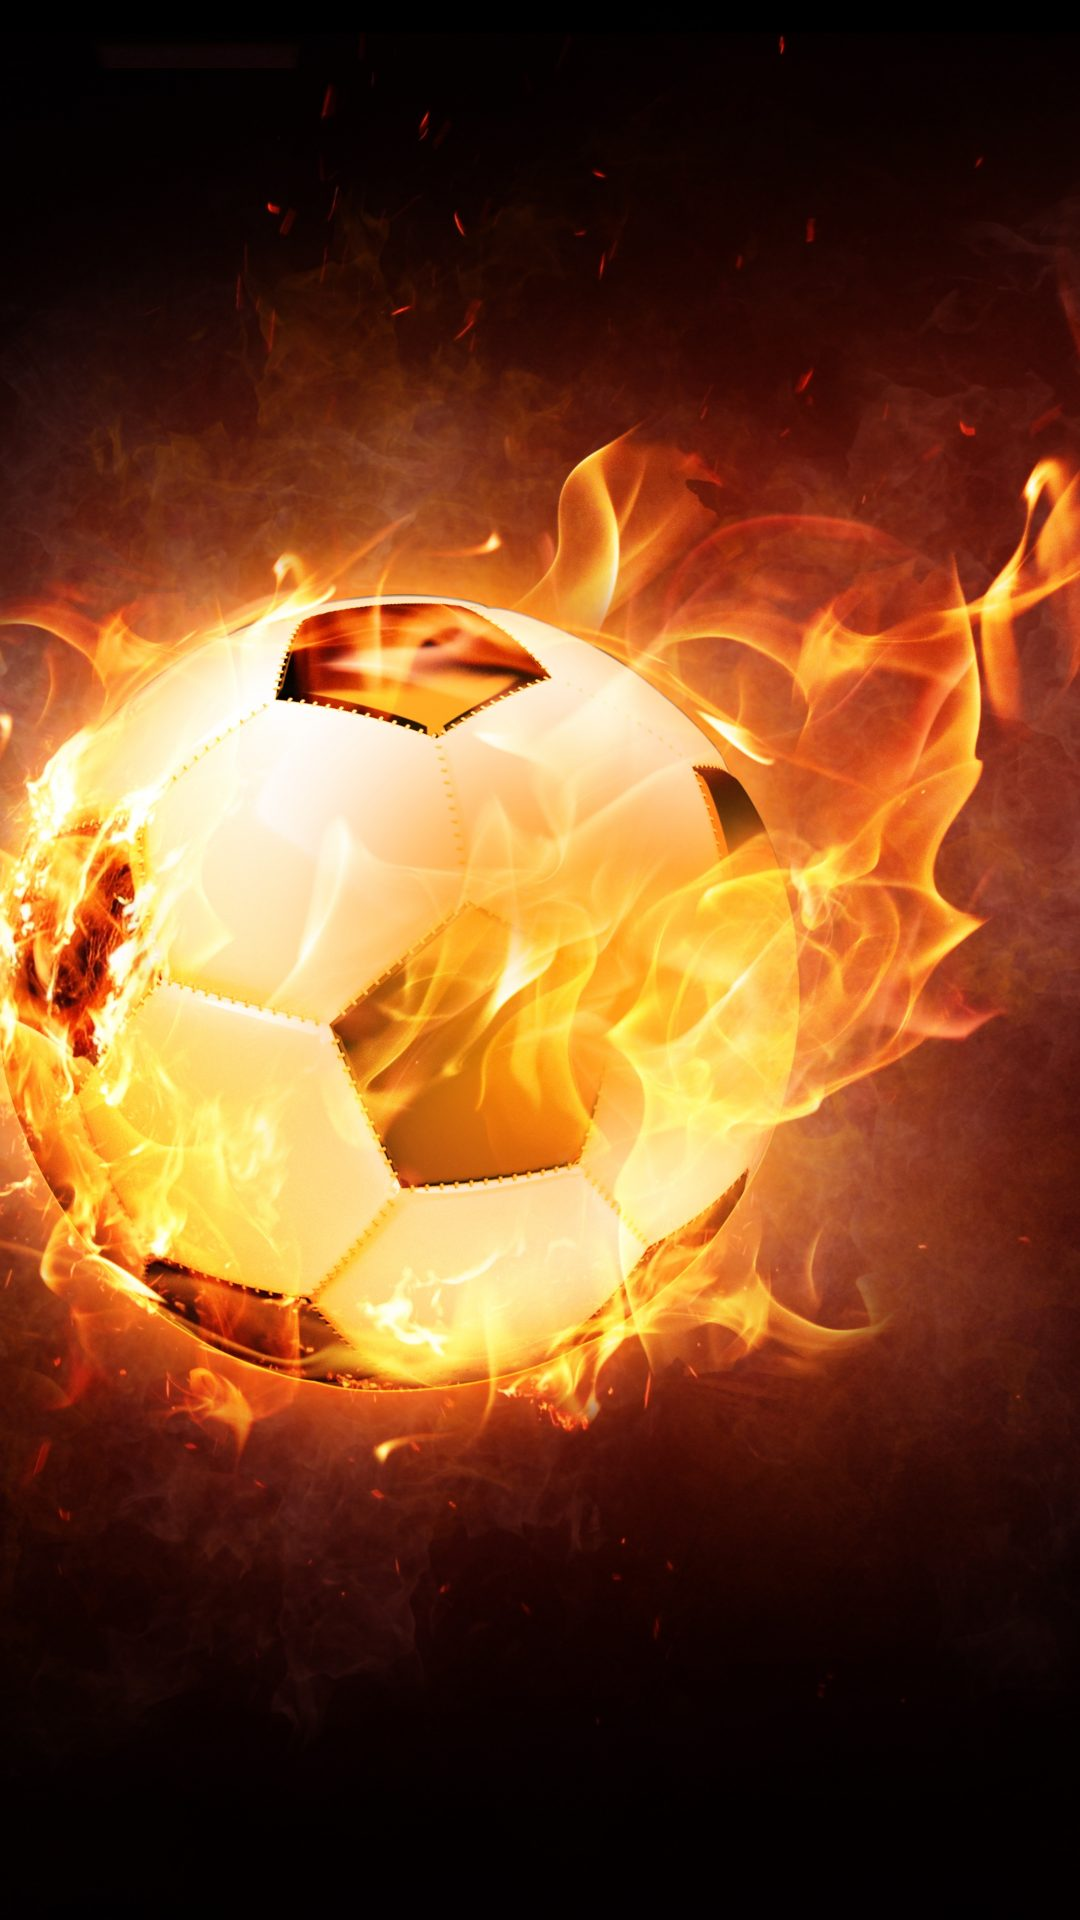 Awesome soccer balls on fire